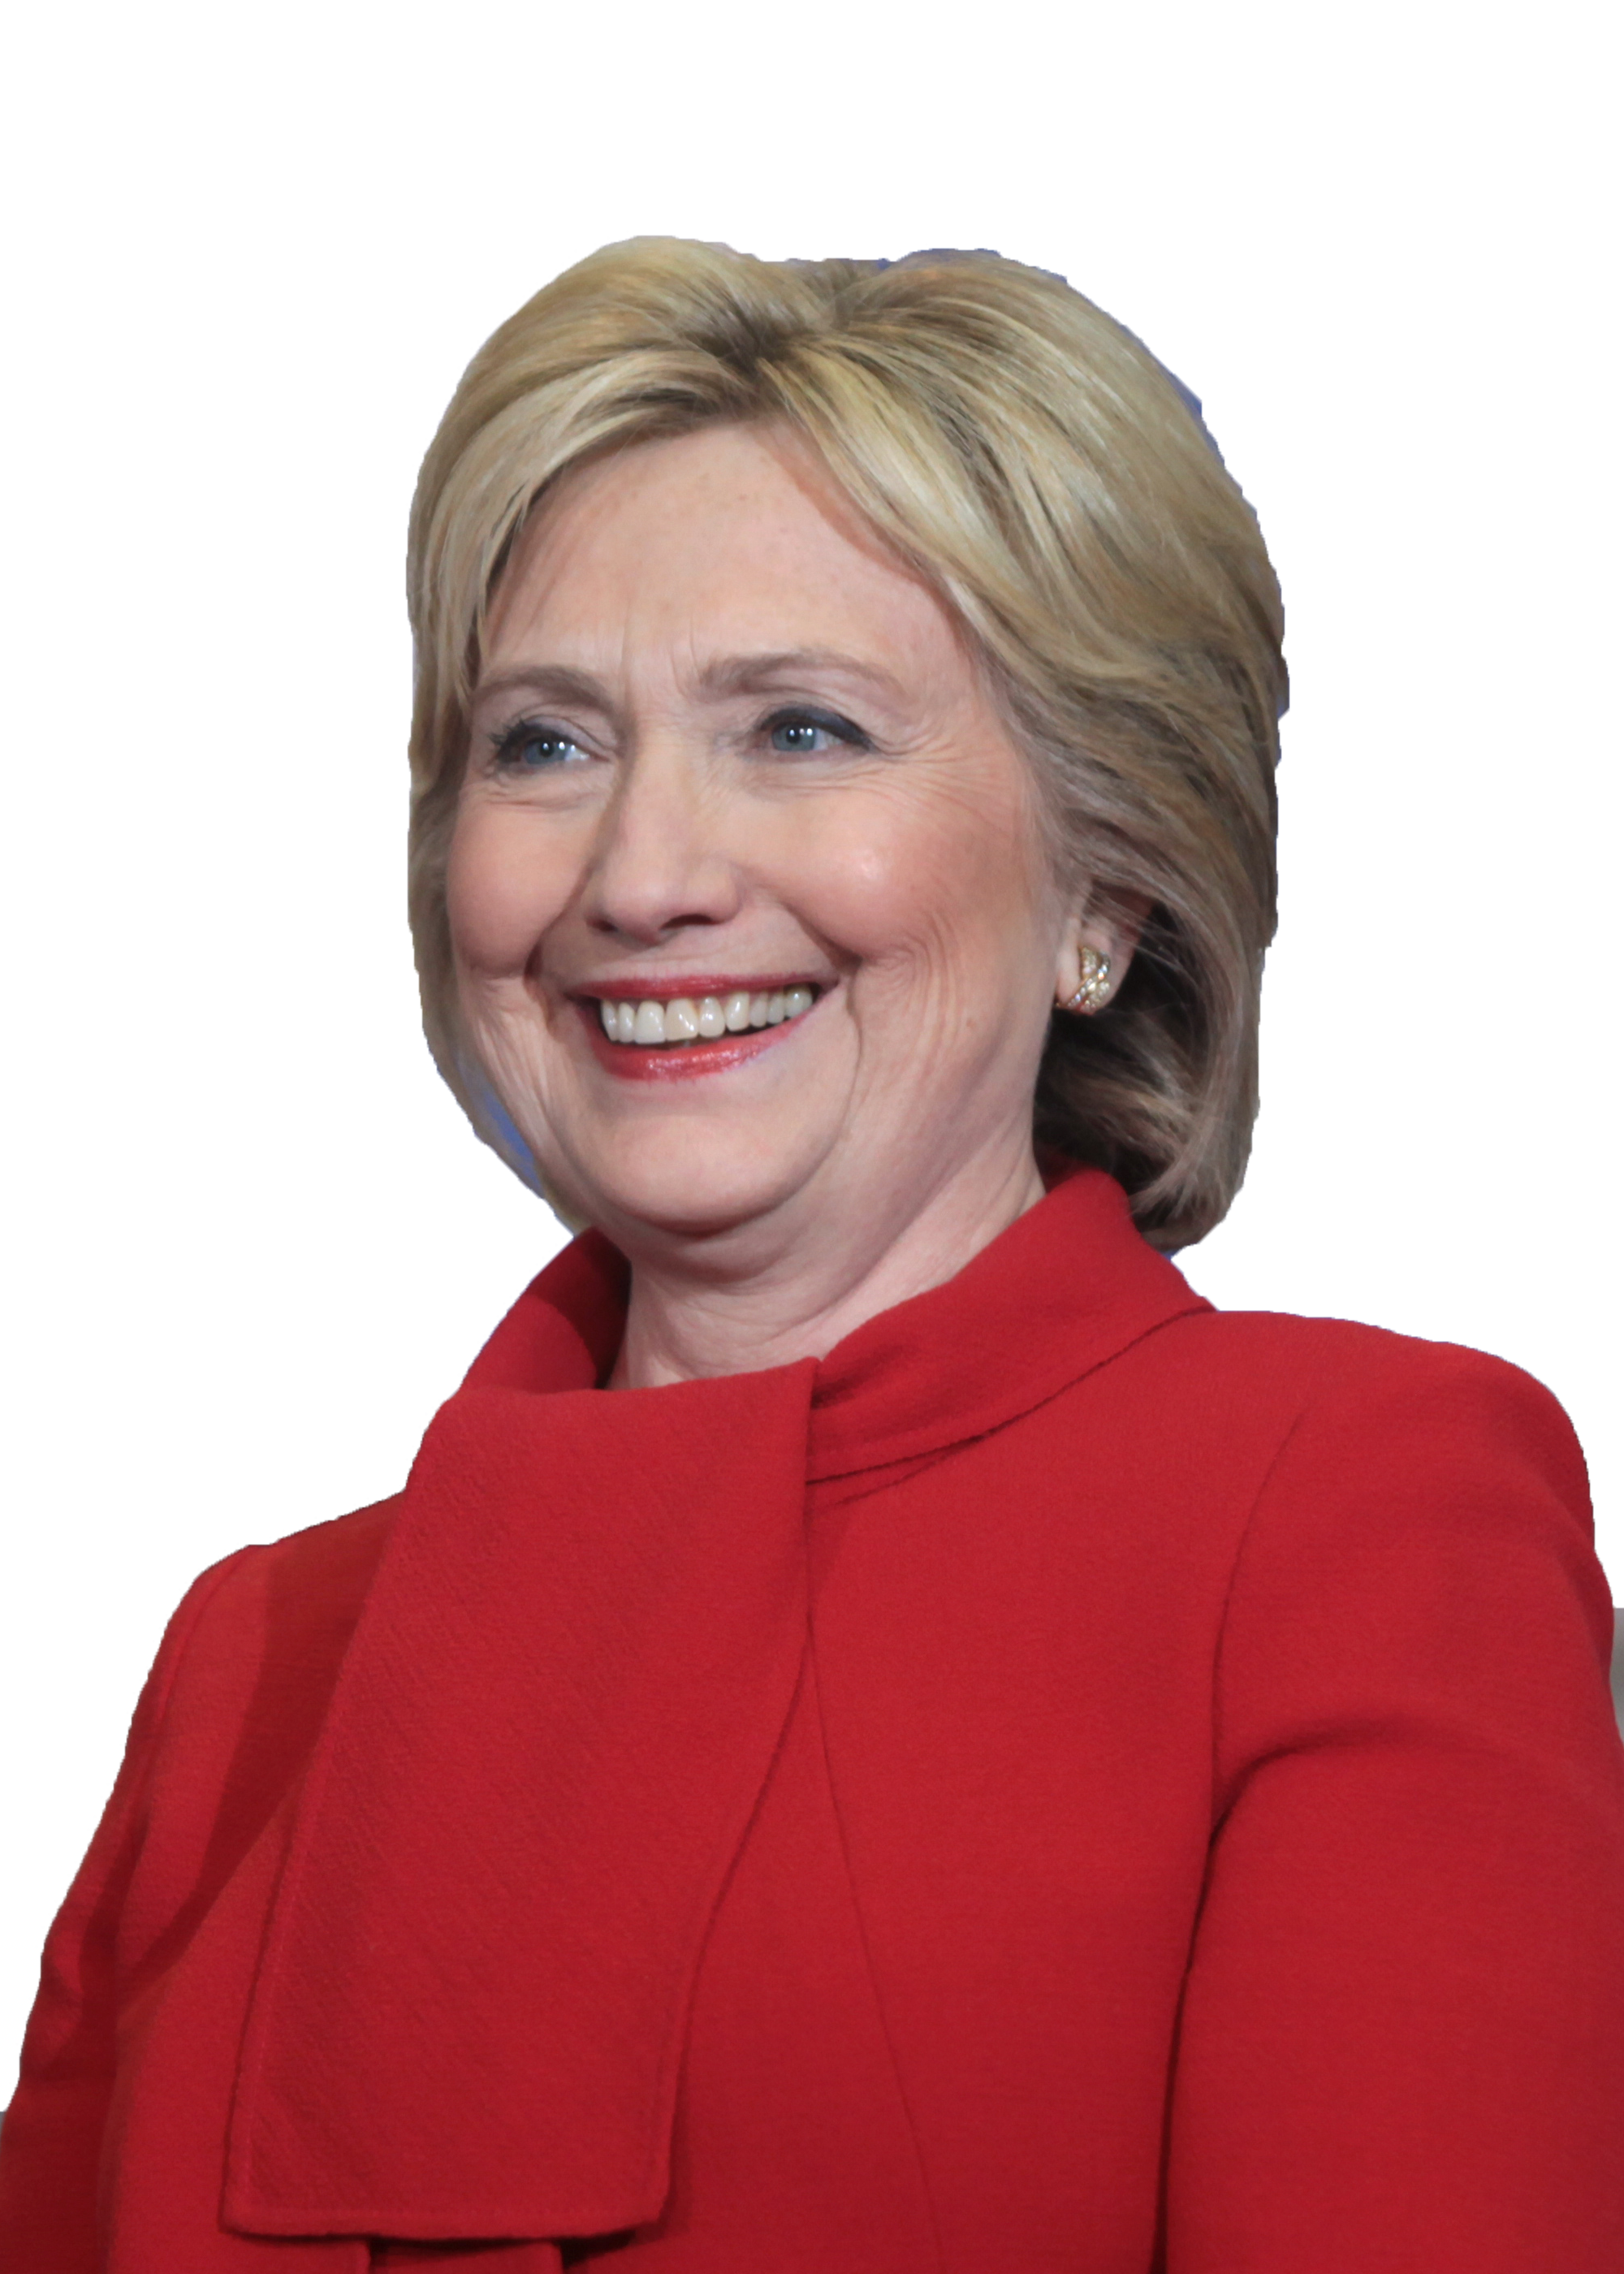 Hillary clinton hair png. File transparent wikimedia commons